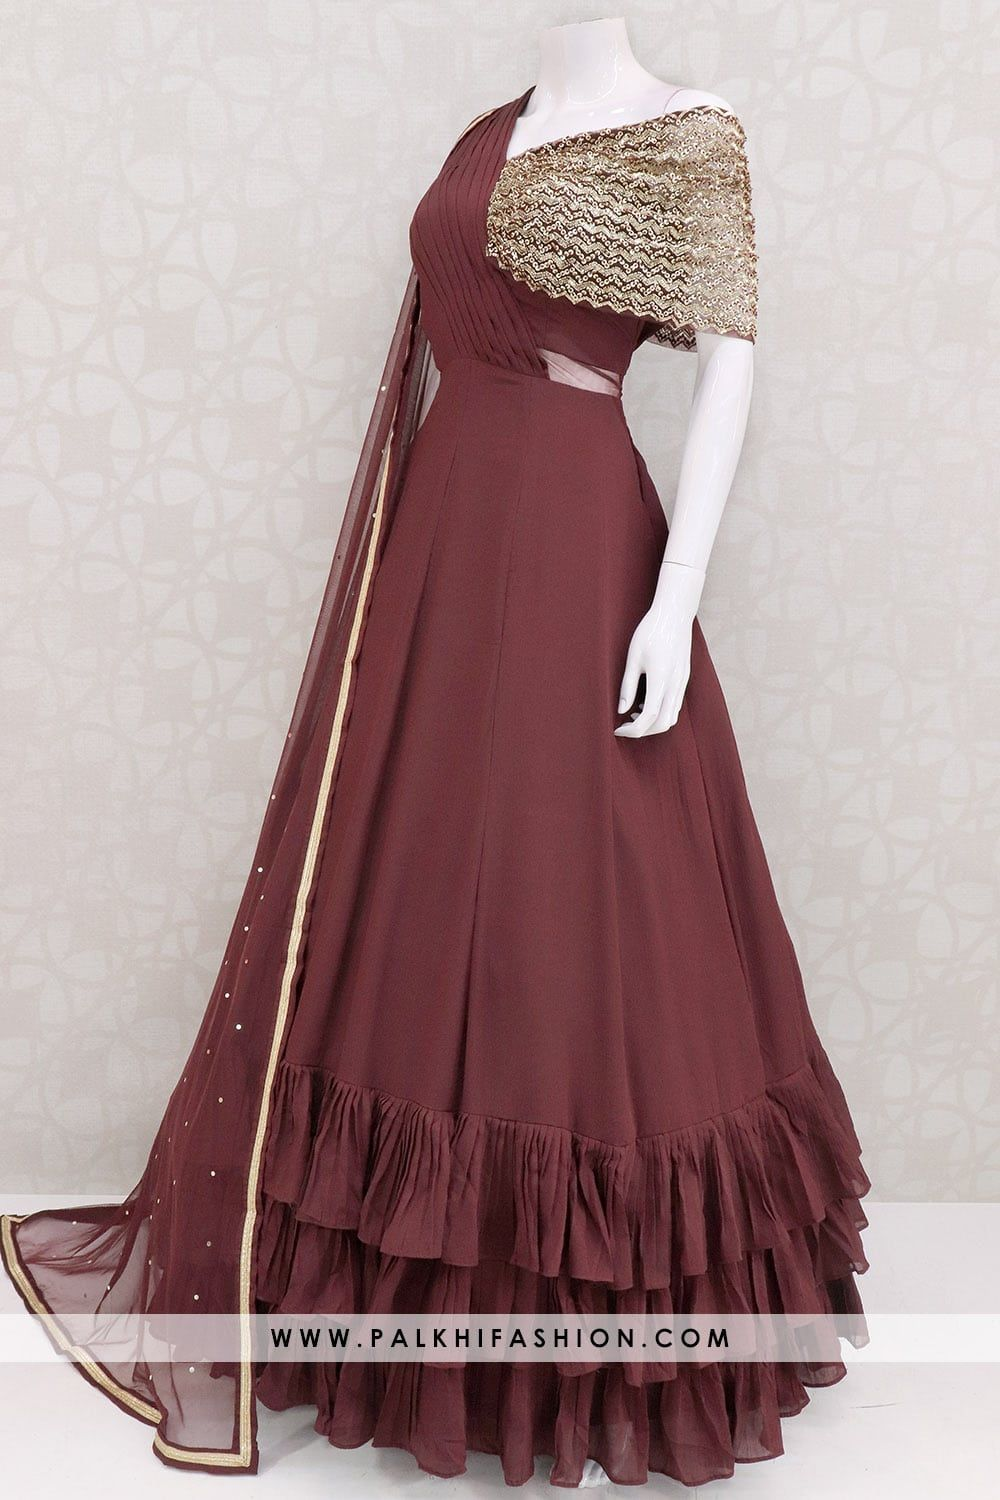 Designer Wine Colored Indian Outfit With Elegant Work & Style #indiandesignerwear